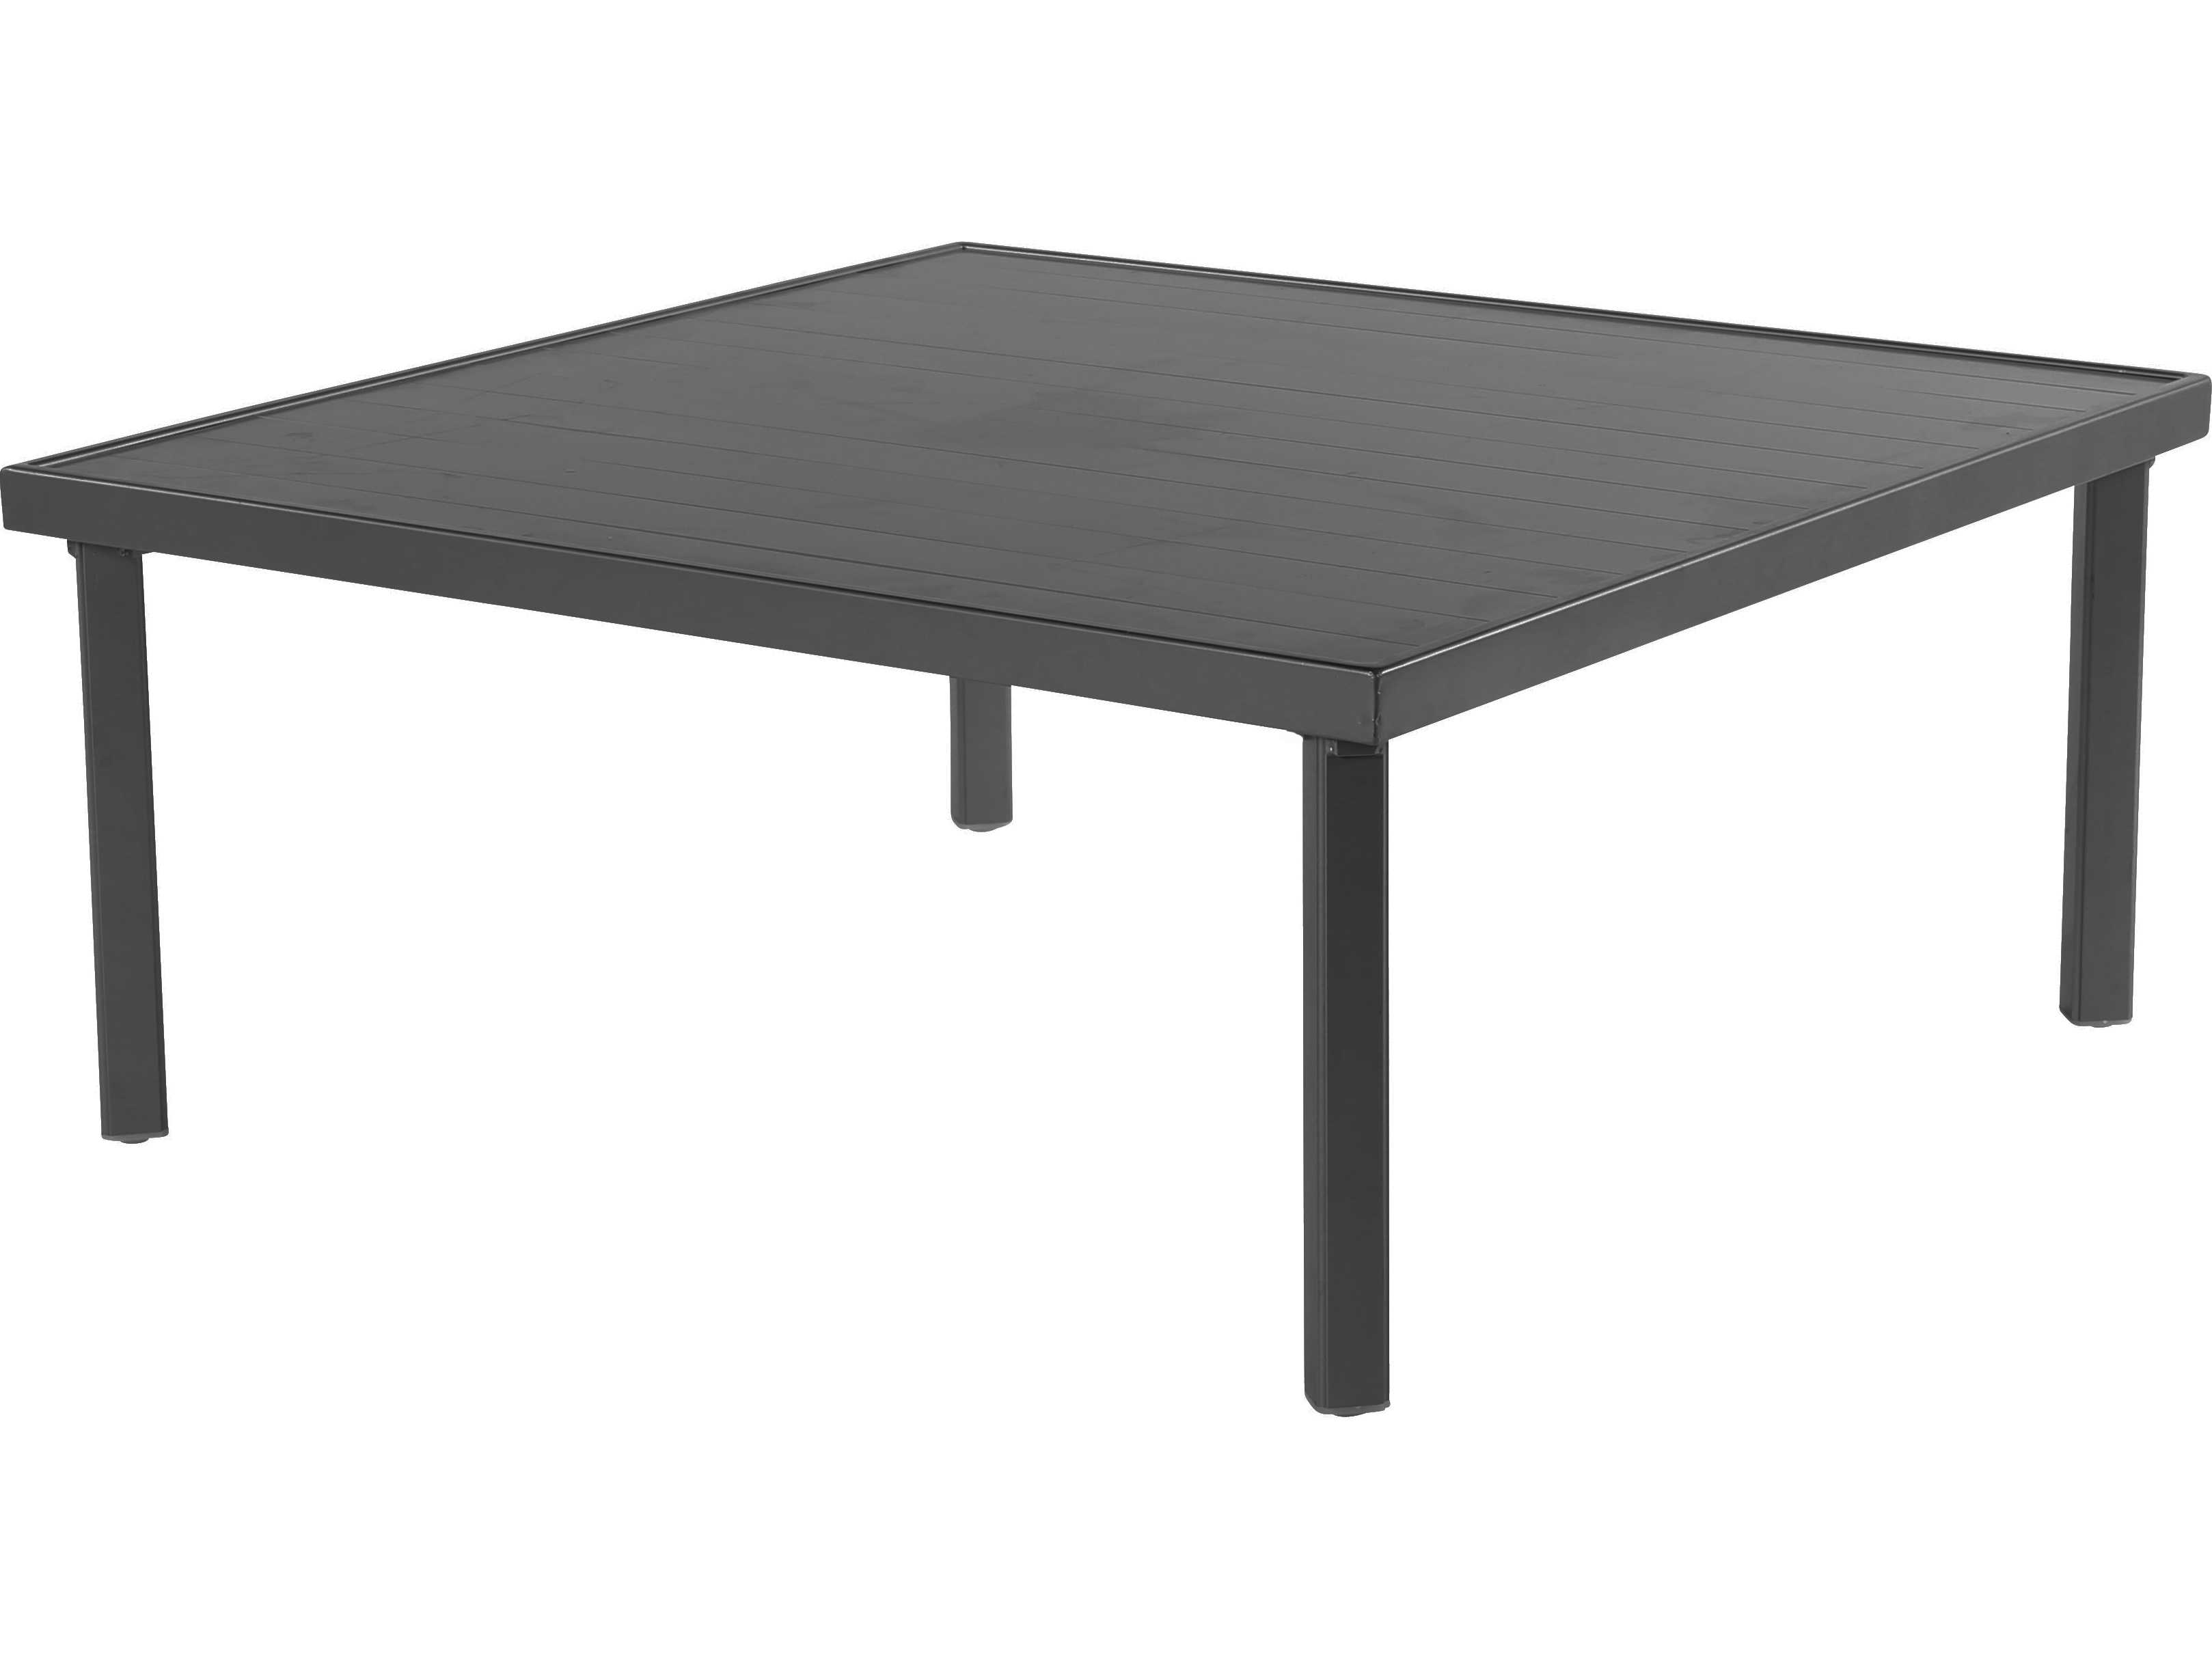 Windward Design Group Avalon Punched Aluminum 39 Square Table